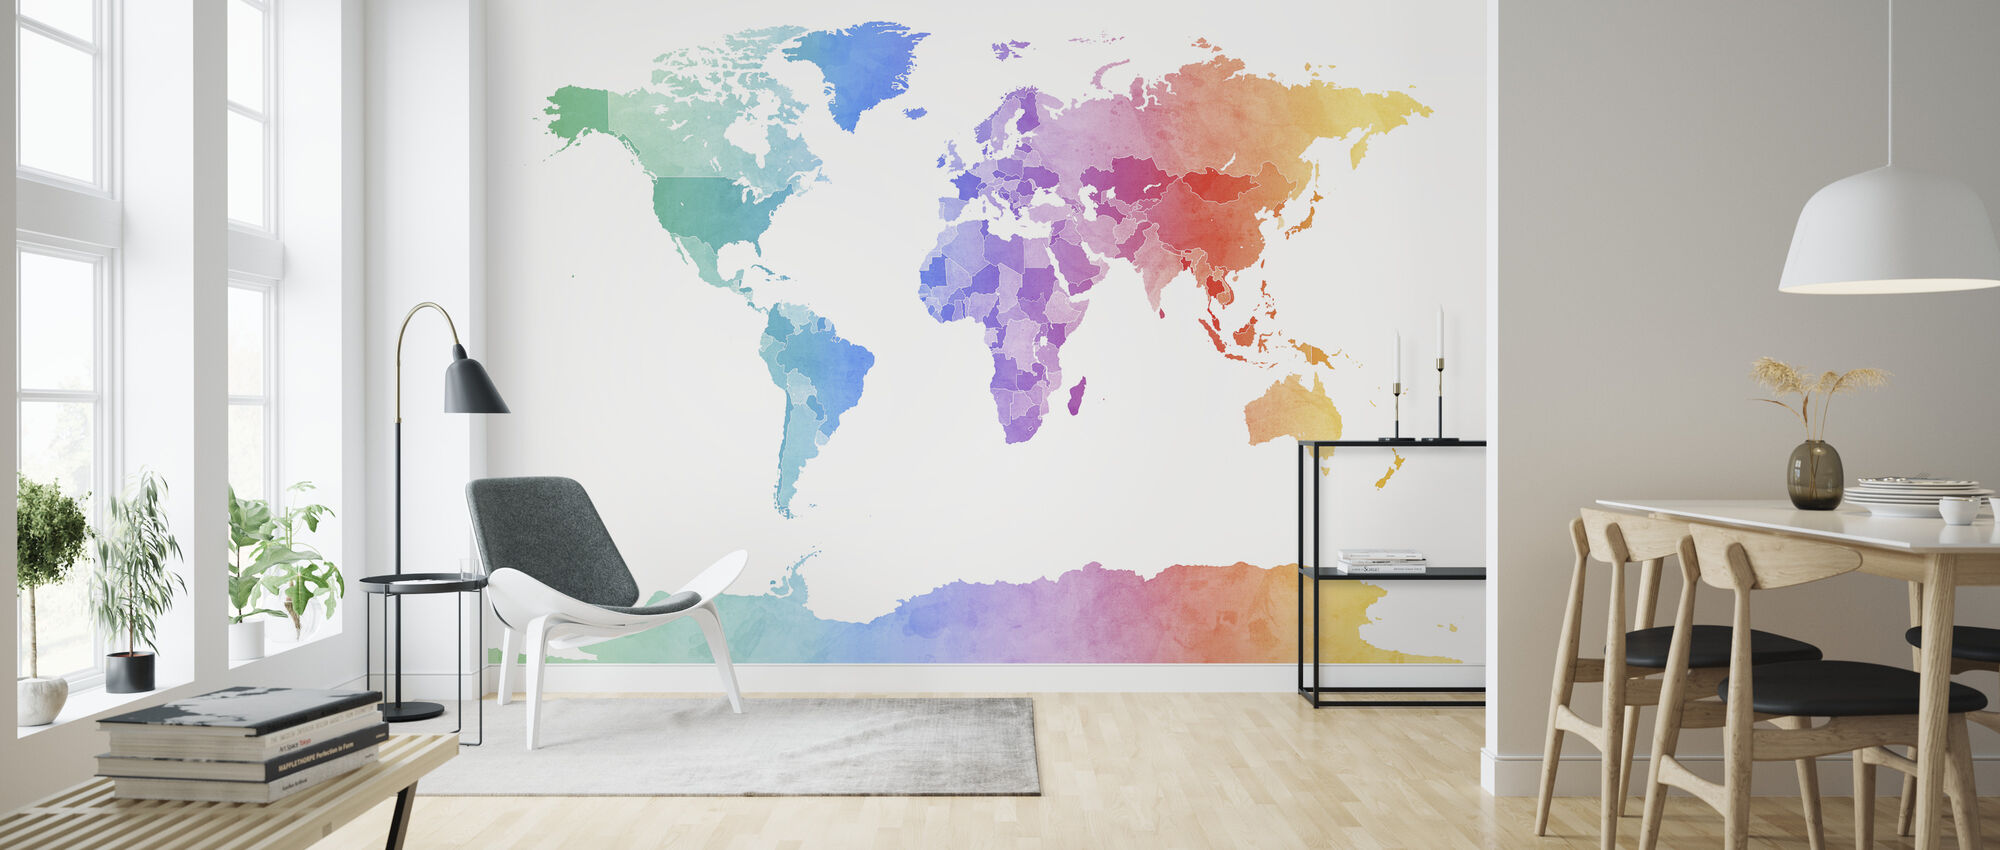 Watercolour World Map Soft Colors - Wallpaper - Living Room